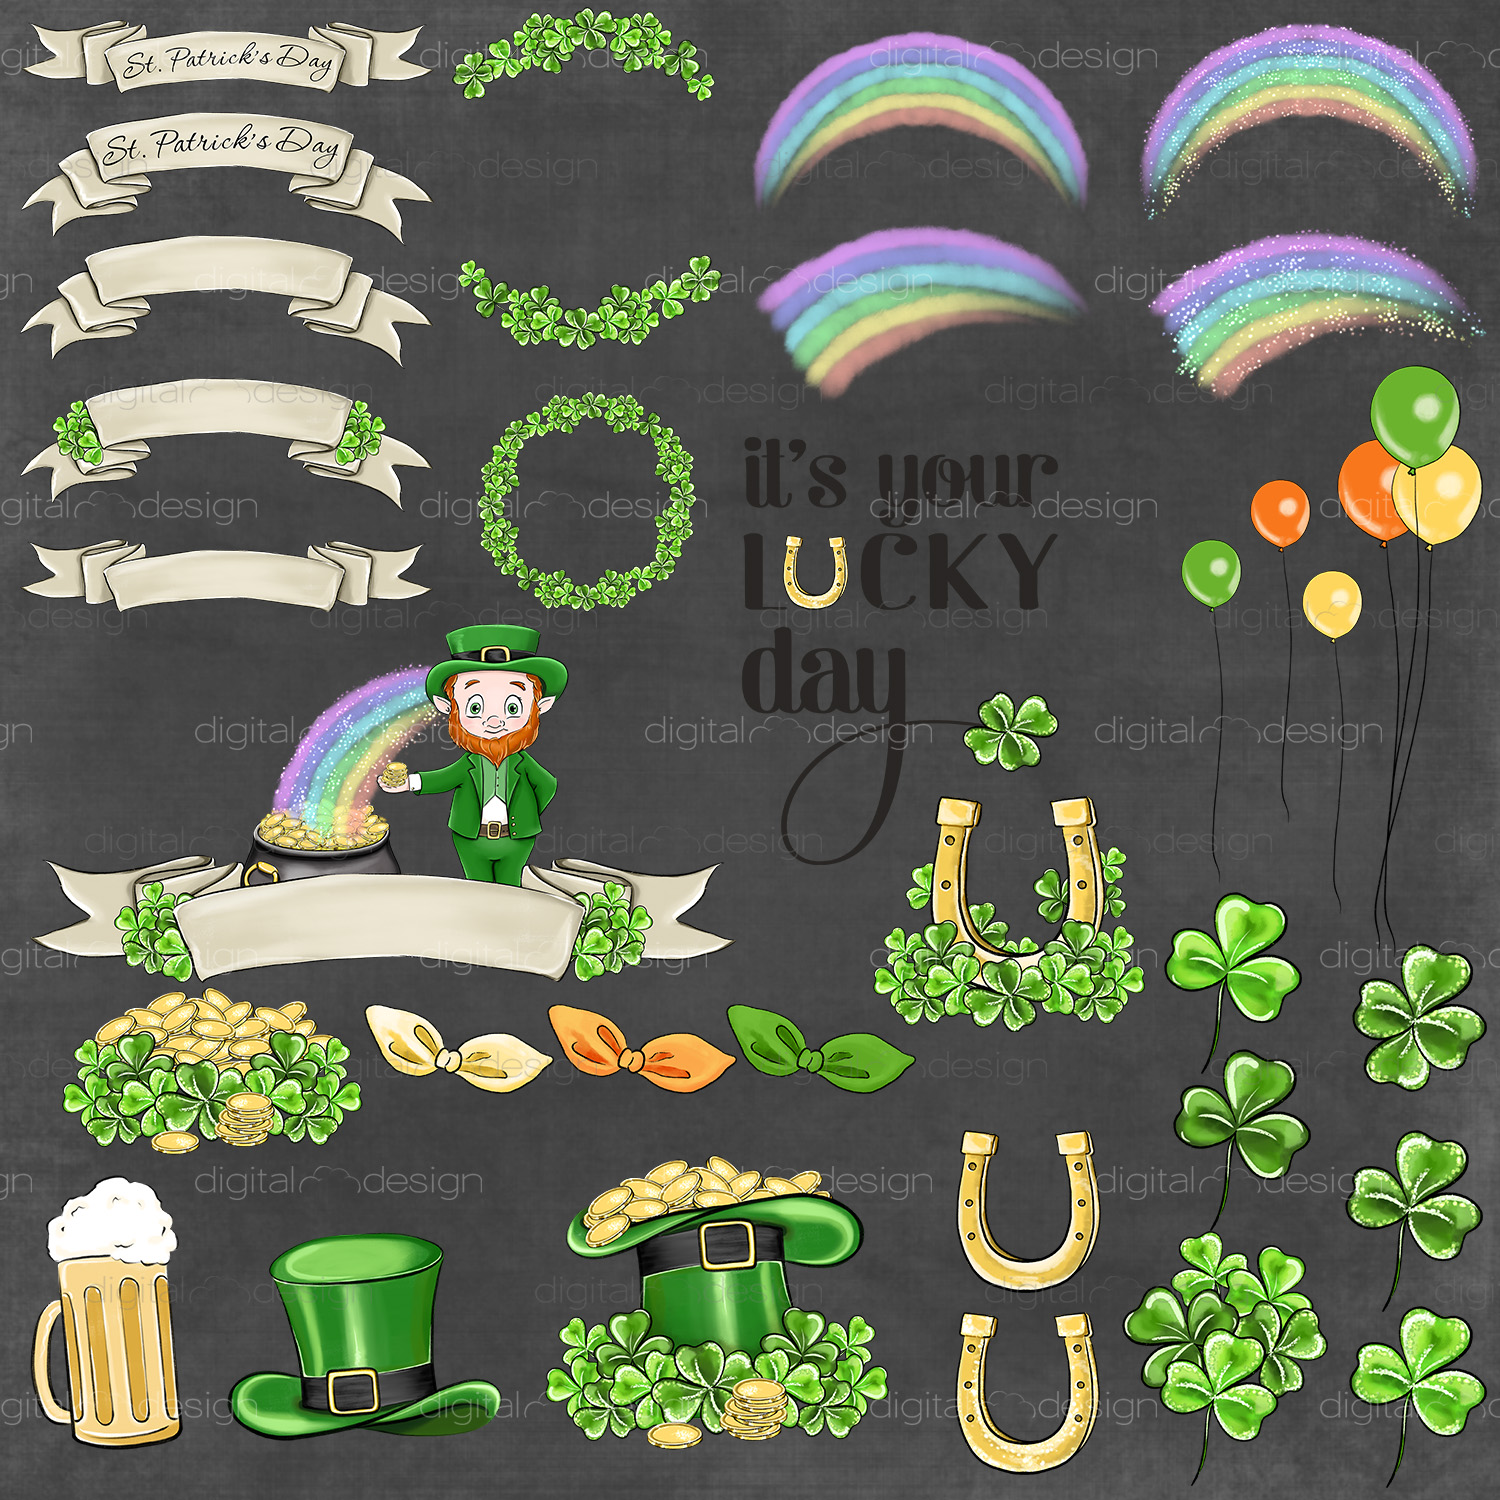 Its Your Lucky Day - Clipart example image 5